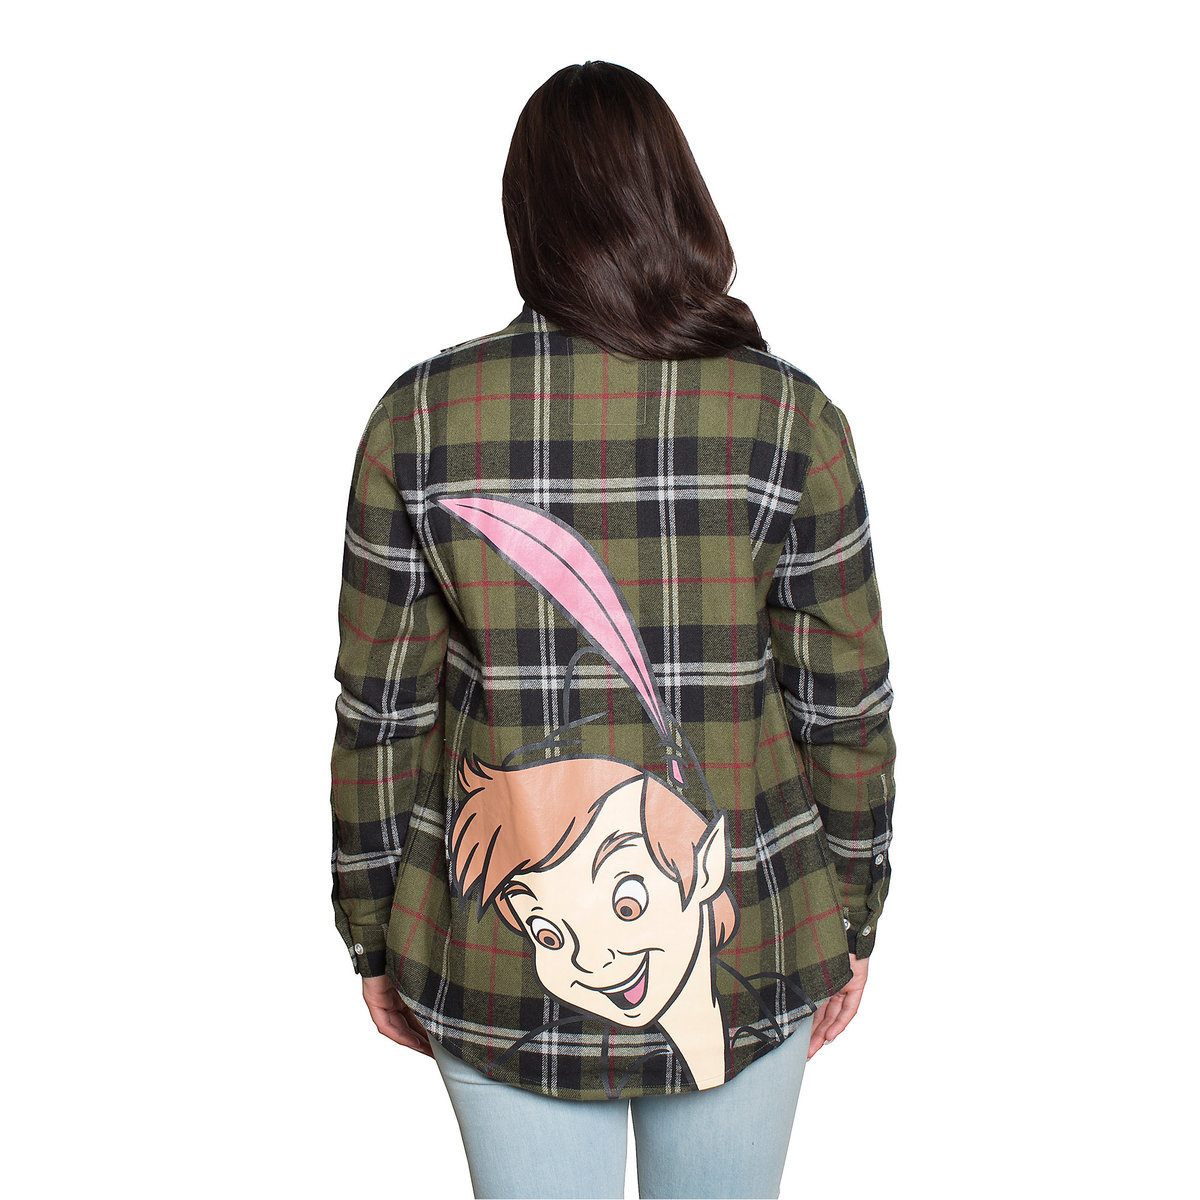 Disney Shop Friends and Family Sale on Peter Pan Flannel Shirt